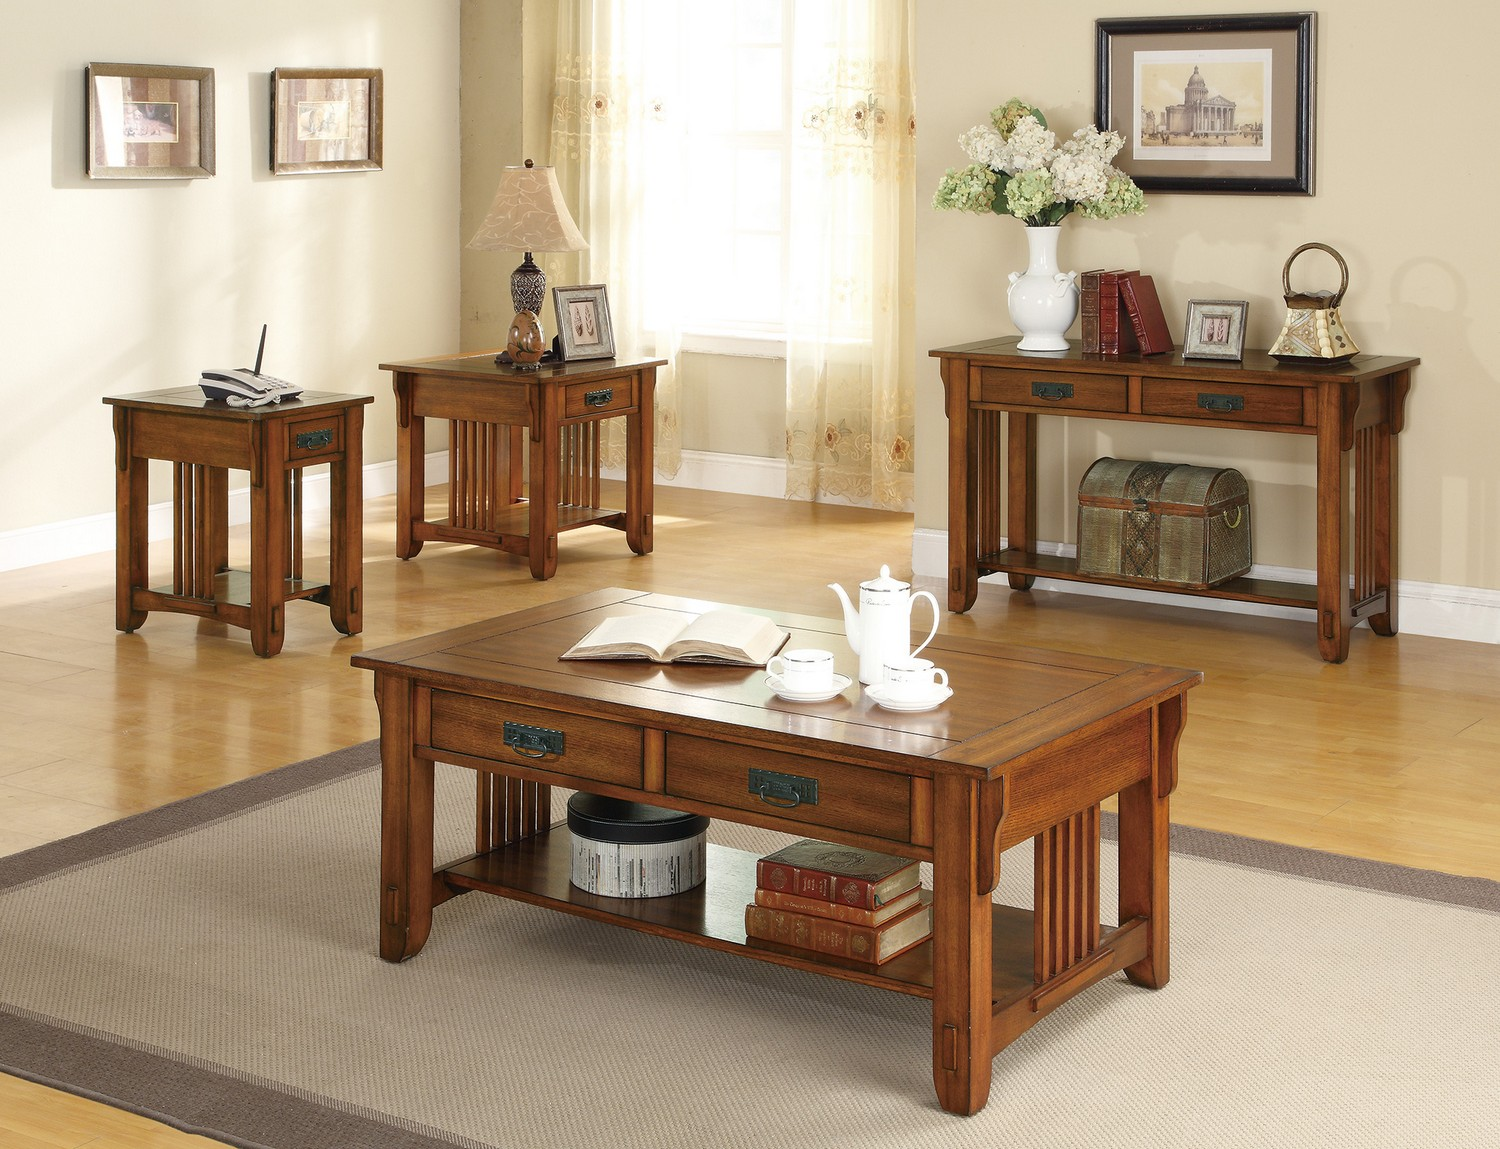 Coaster 702008 Coffee/Cocktail Table Set - Warm Brown